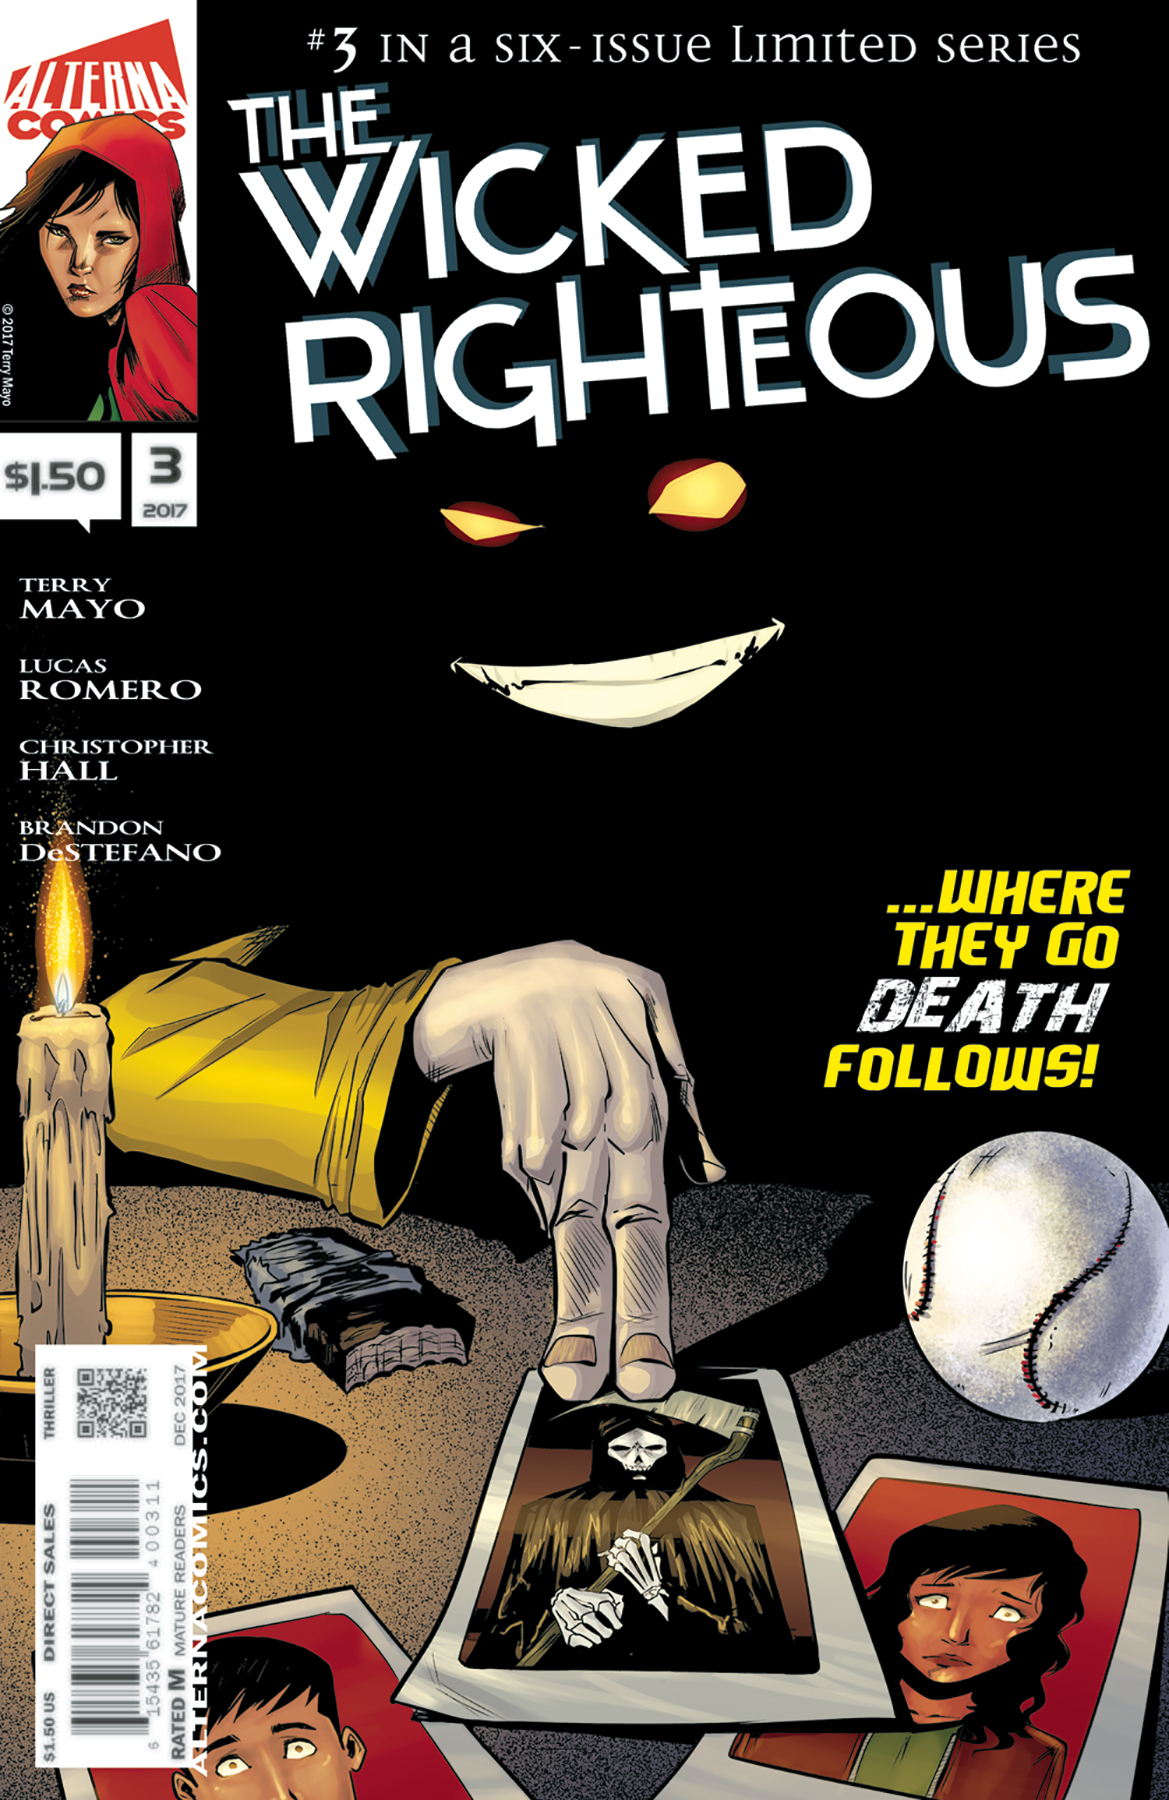 WICKED RIGHTEOUS #3 (OF 6) (MR)